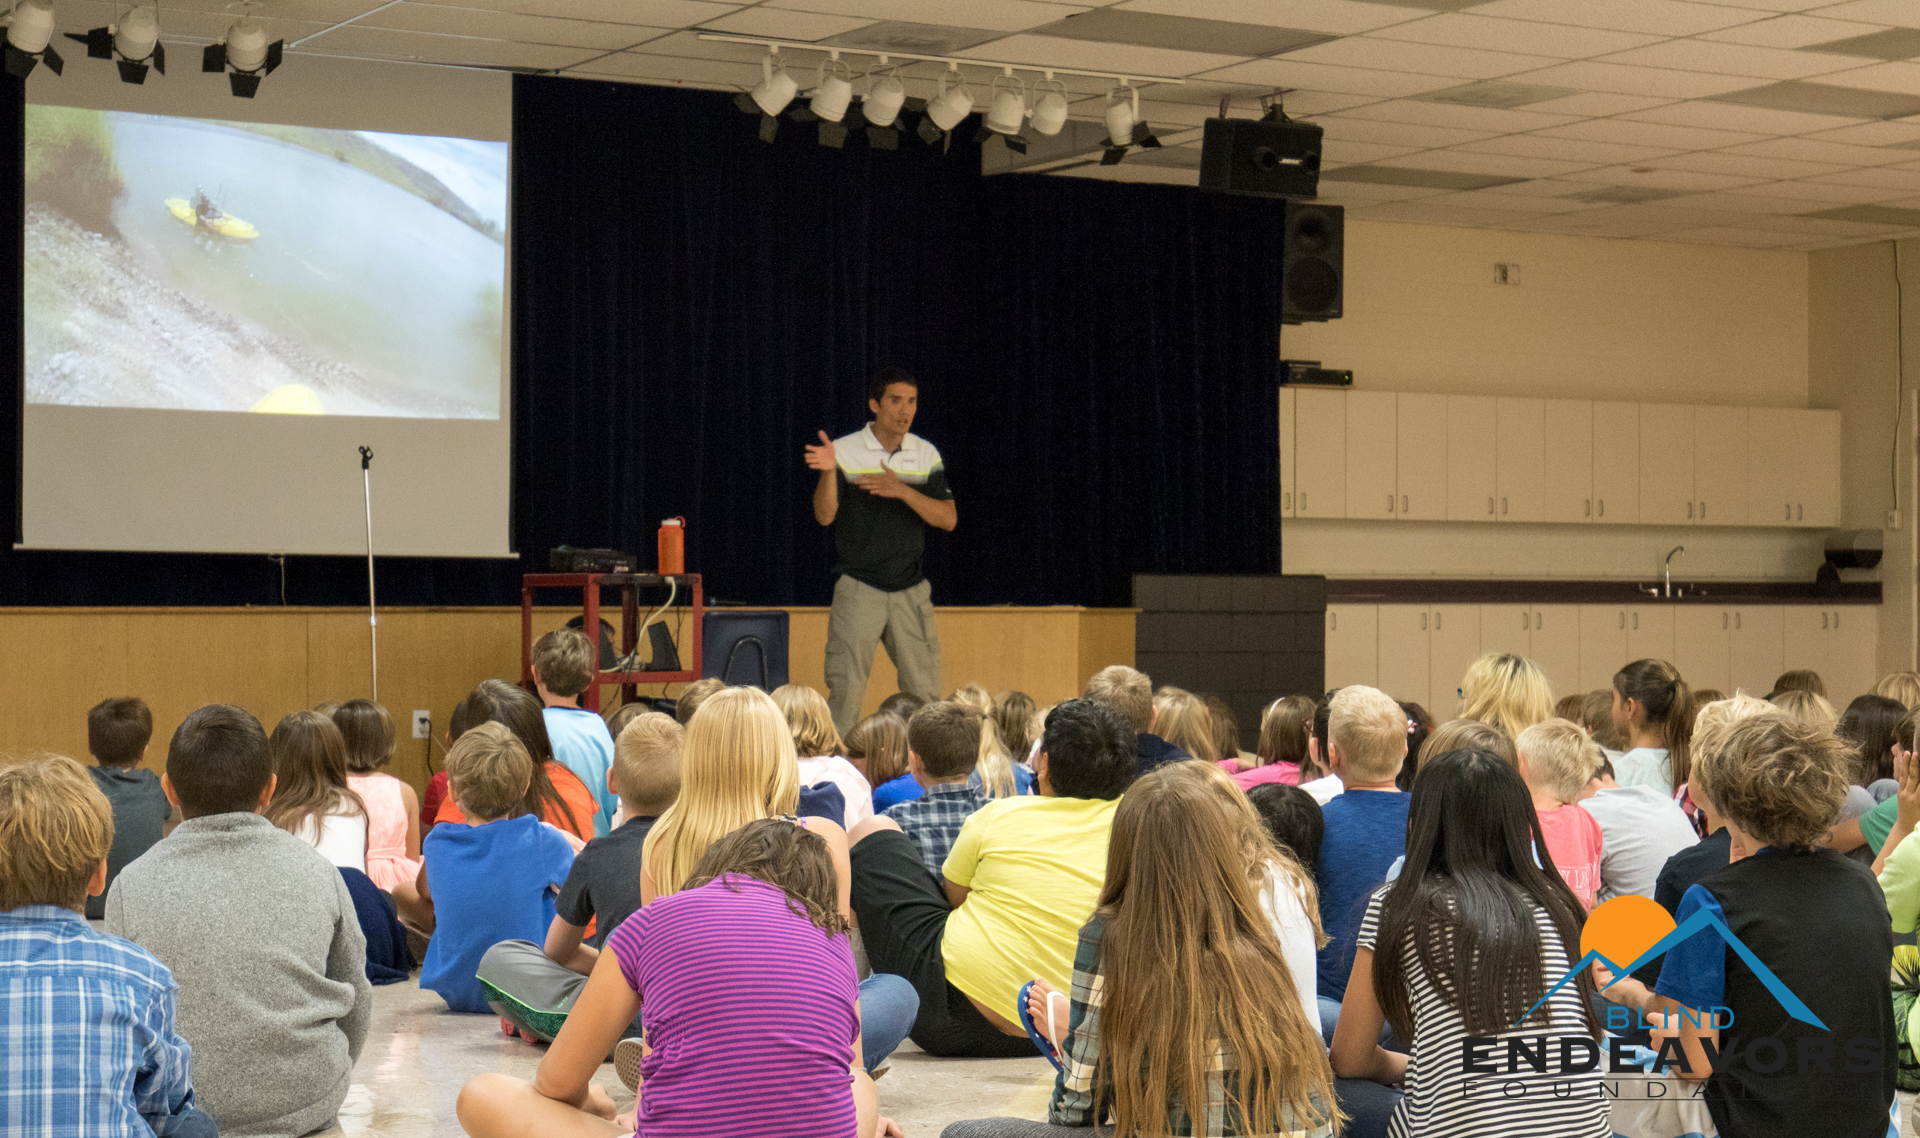 Steve Baskis, founder of Blind Endeavors Foundation, speaks to students at Ridgway Elementary School.